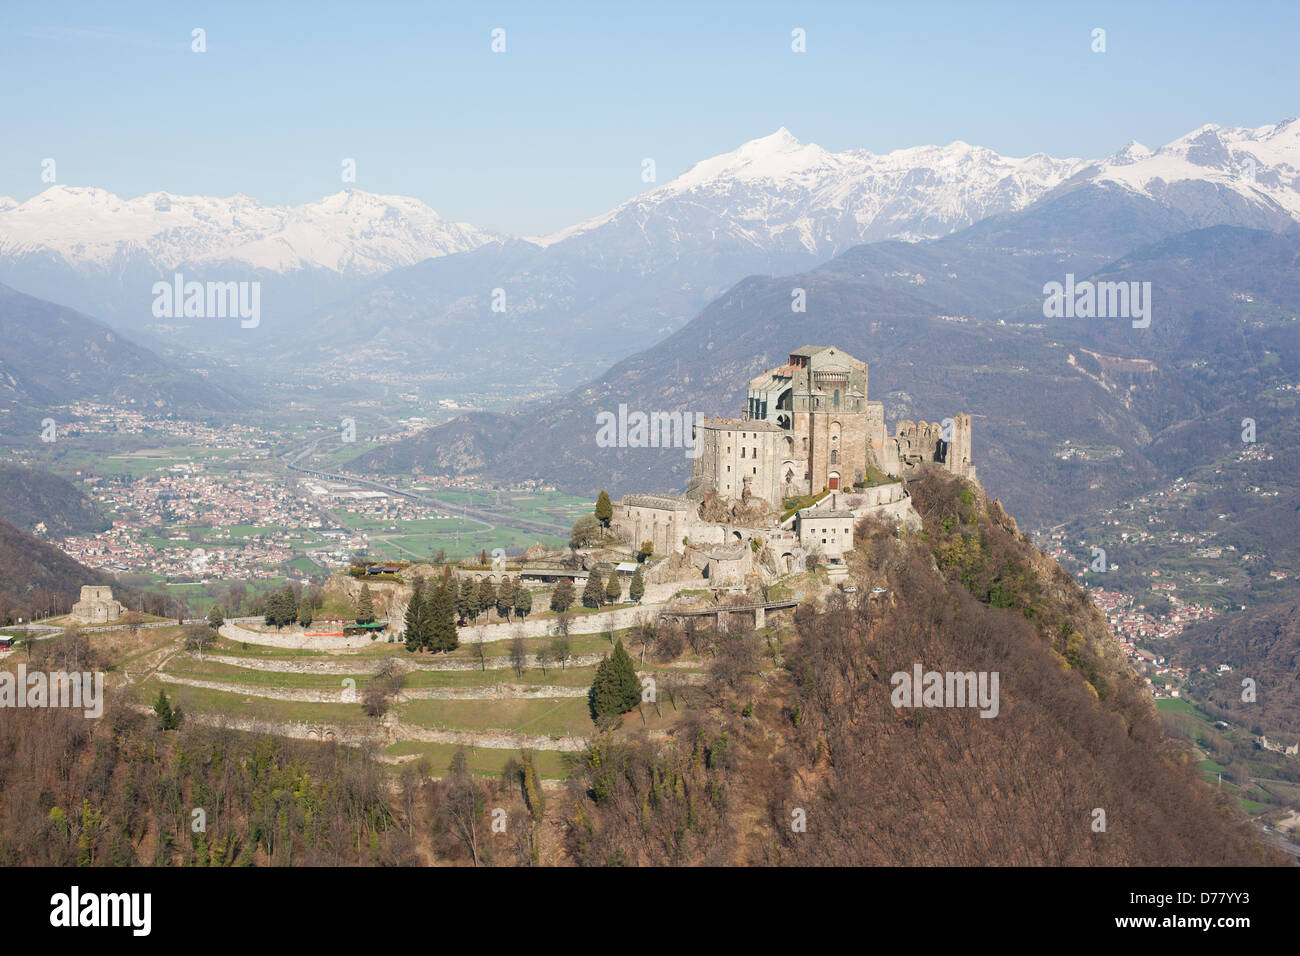 SACRA DI SAN MICHELE (aerial view). Abbey on a rocky promontory, high above the Susa Valley, Italian Alps, Piedmont, - Stock Image